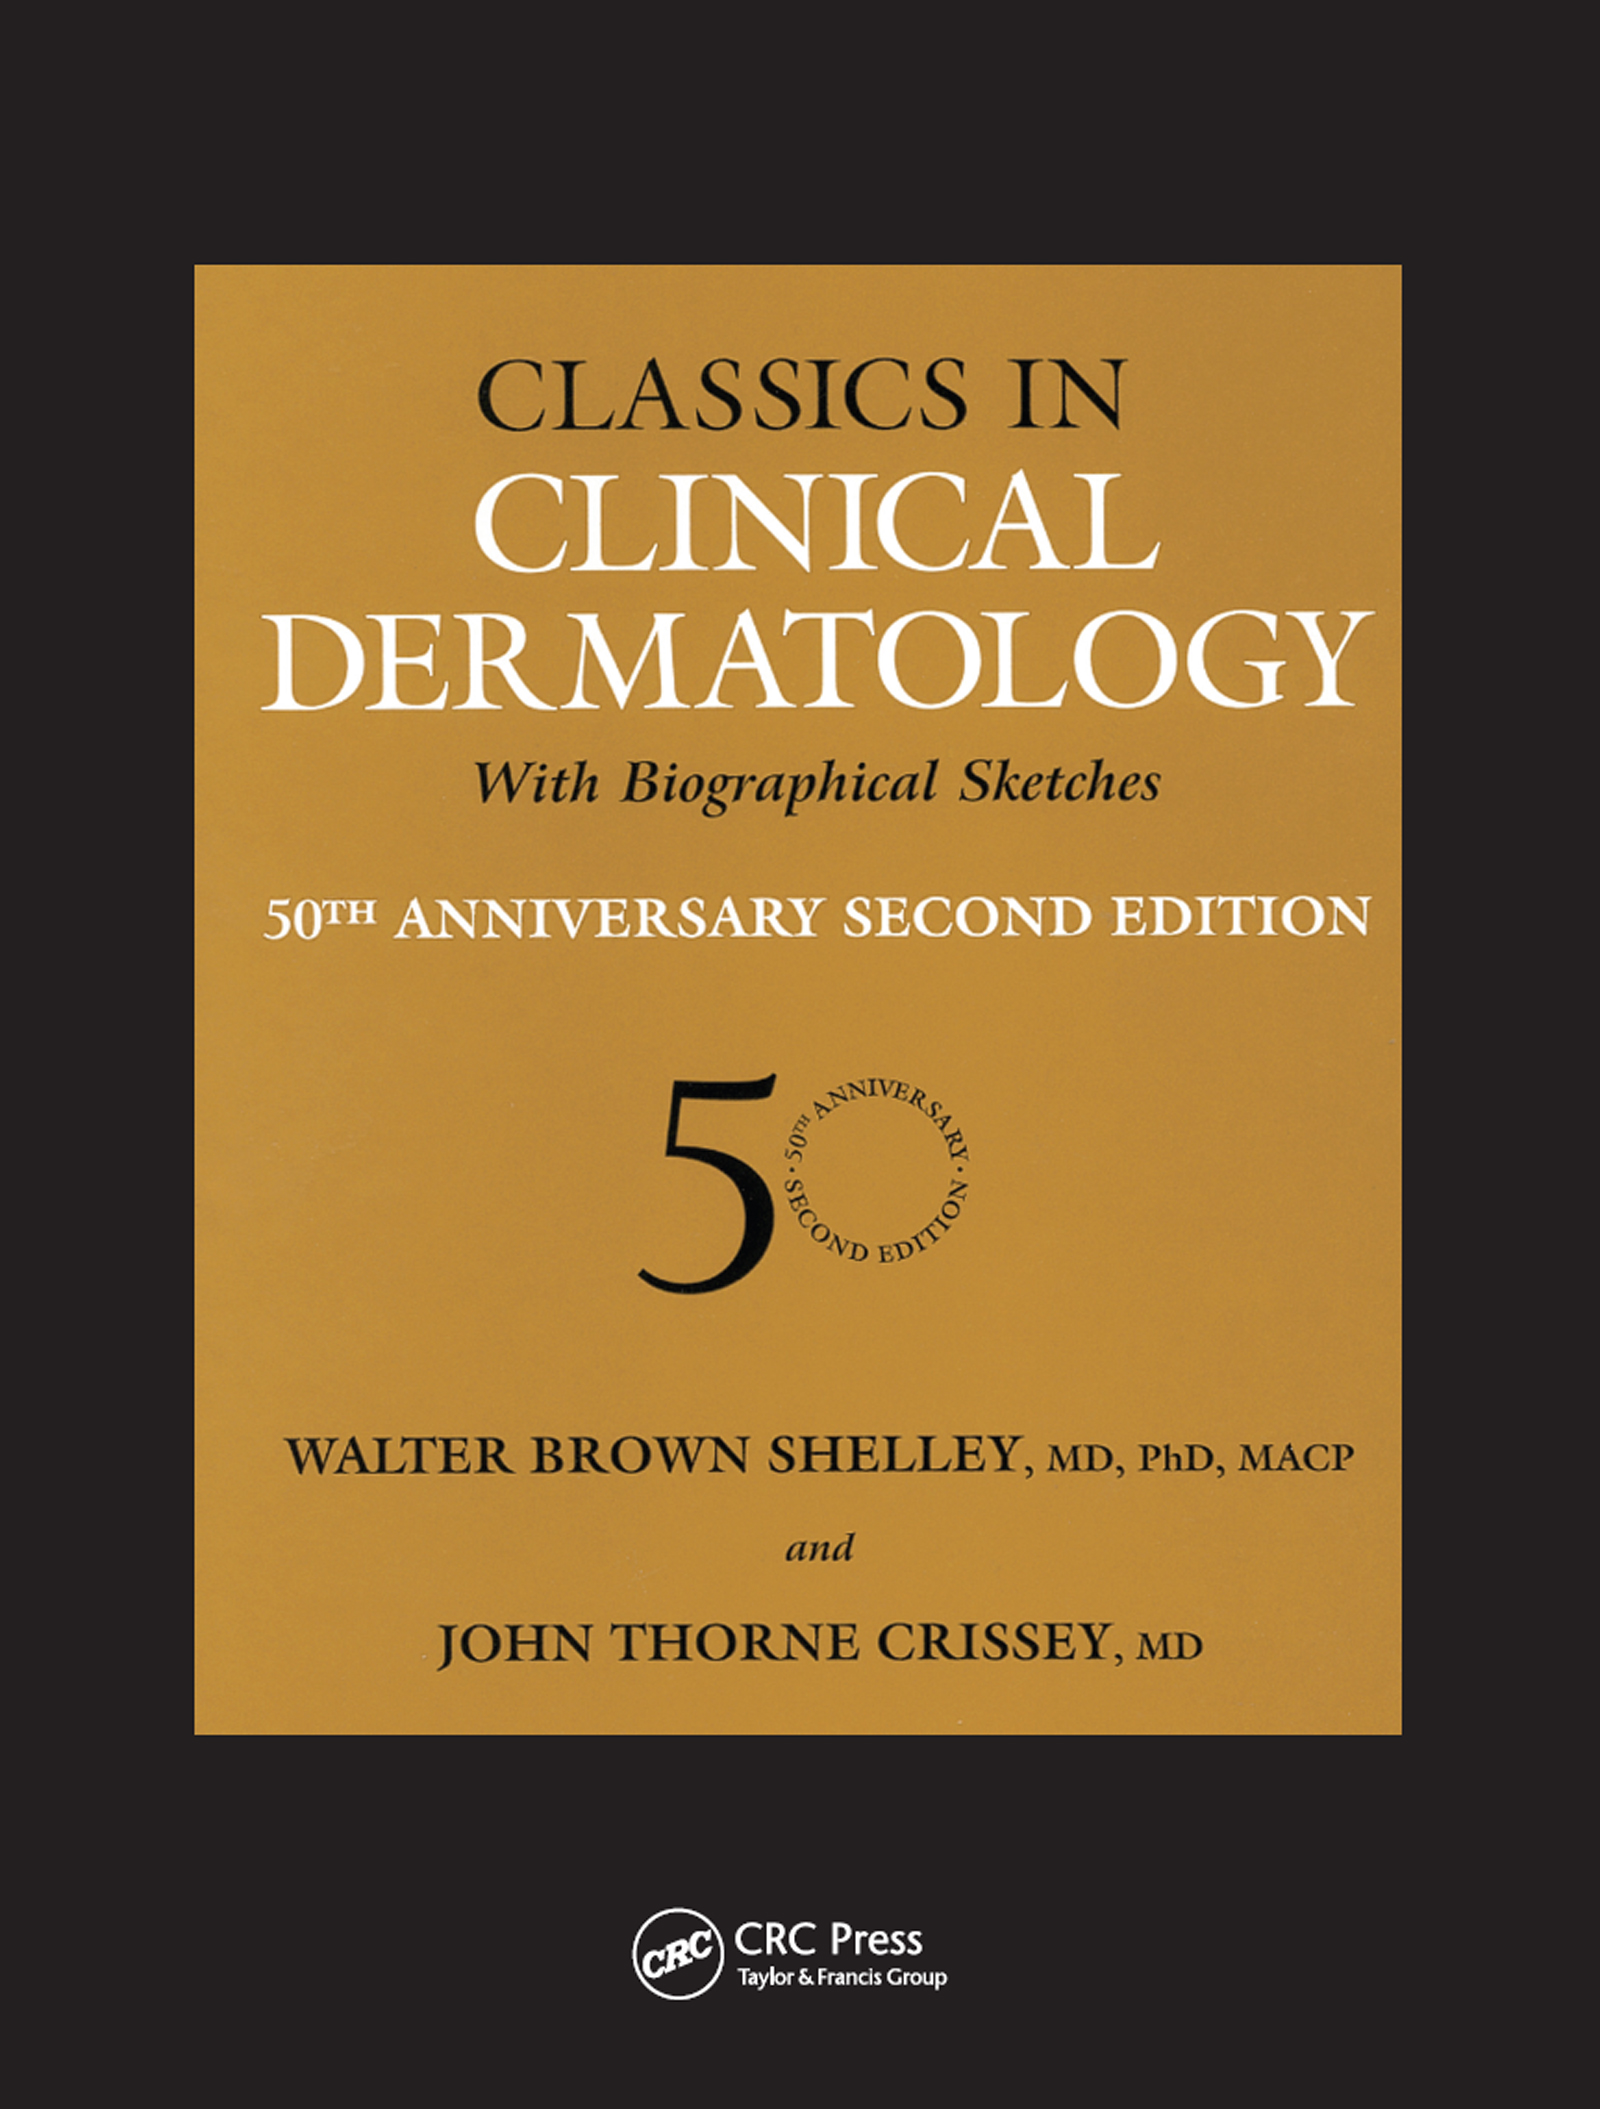 Classics in Clinical Dermatology with Biographical Sketches, 50th Anniversary: 1st Edition (Hardback) book cover